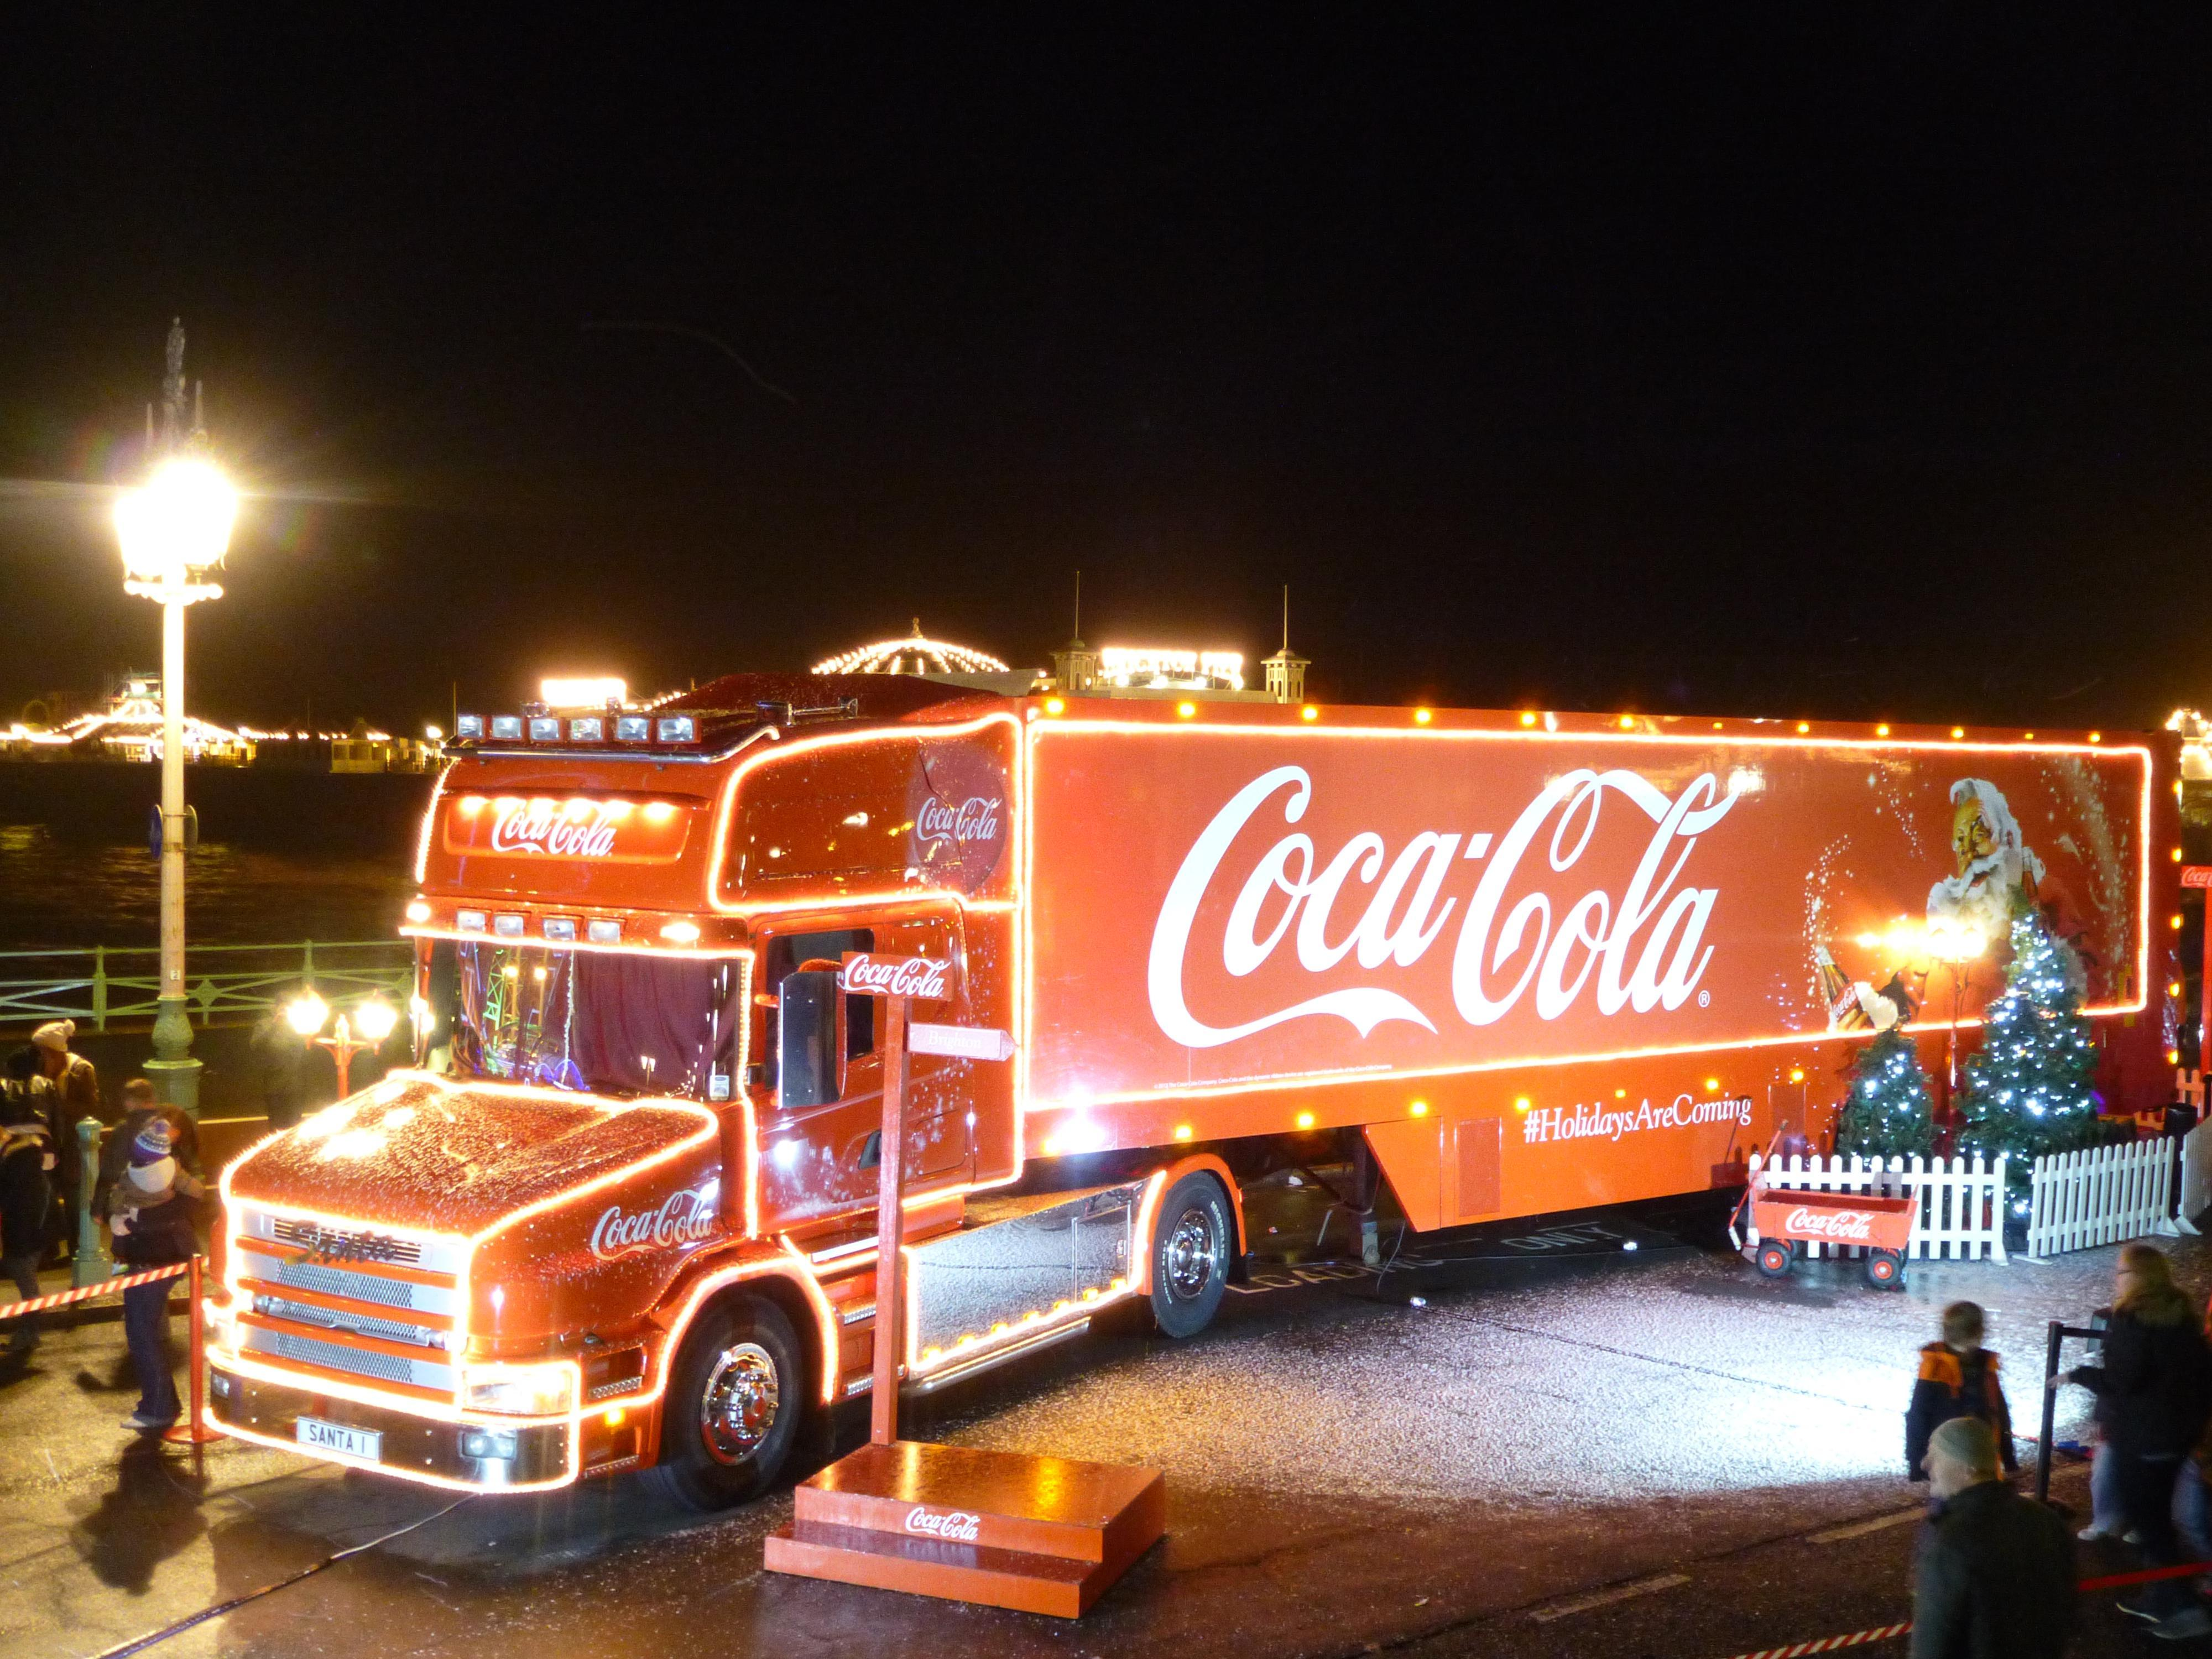 df56f4f82dc6f30bb921ad9c1c8dfd09 Coca-Cola's Christmas truck tour of the UK 'should be BANNED, to help in crackdown on childhood obesity', experts say